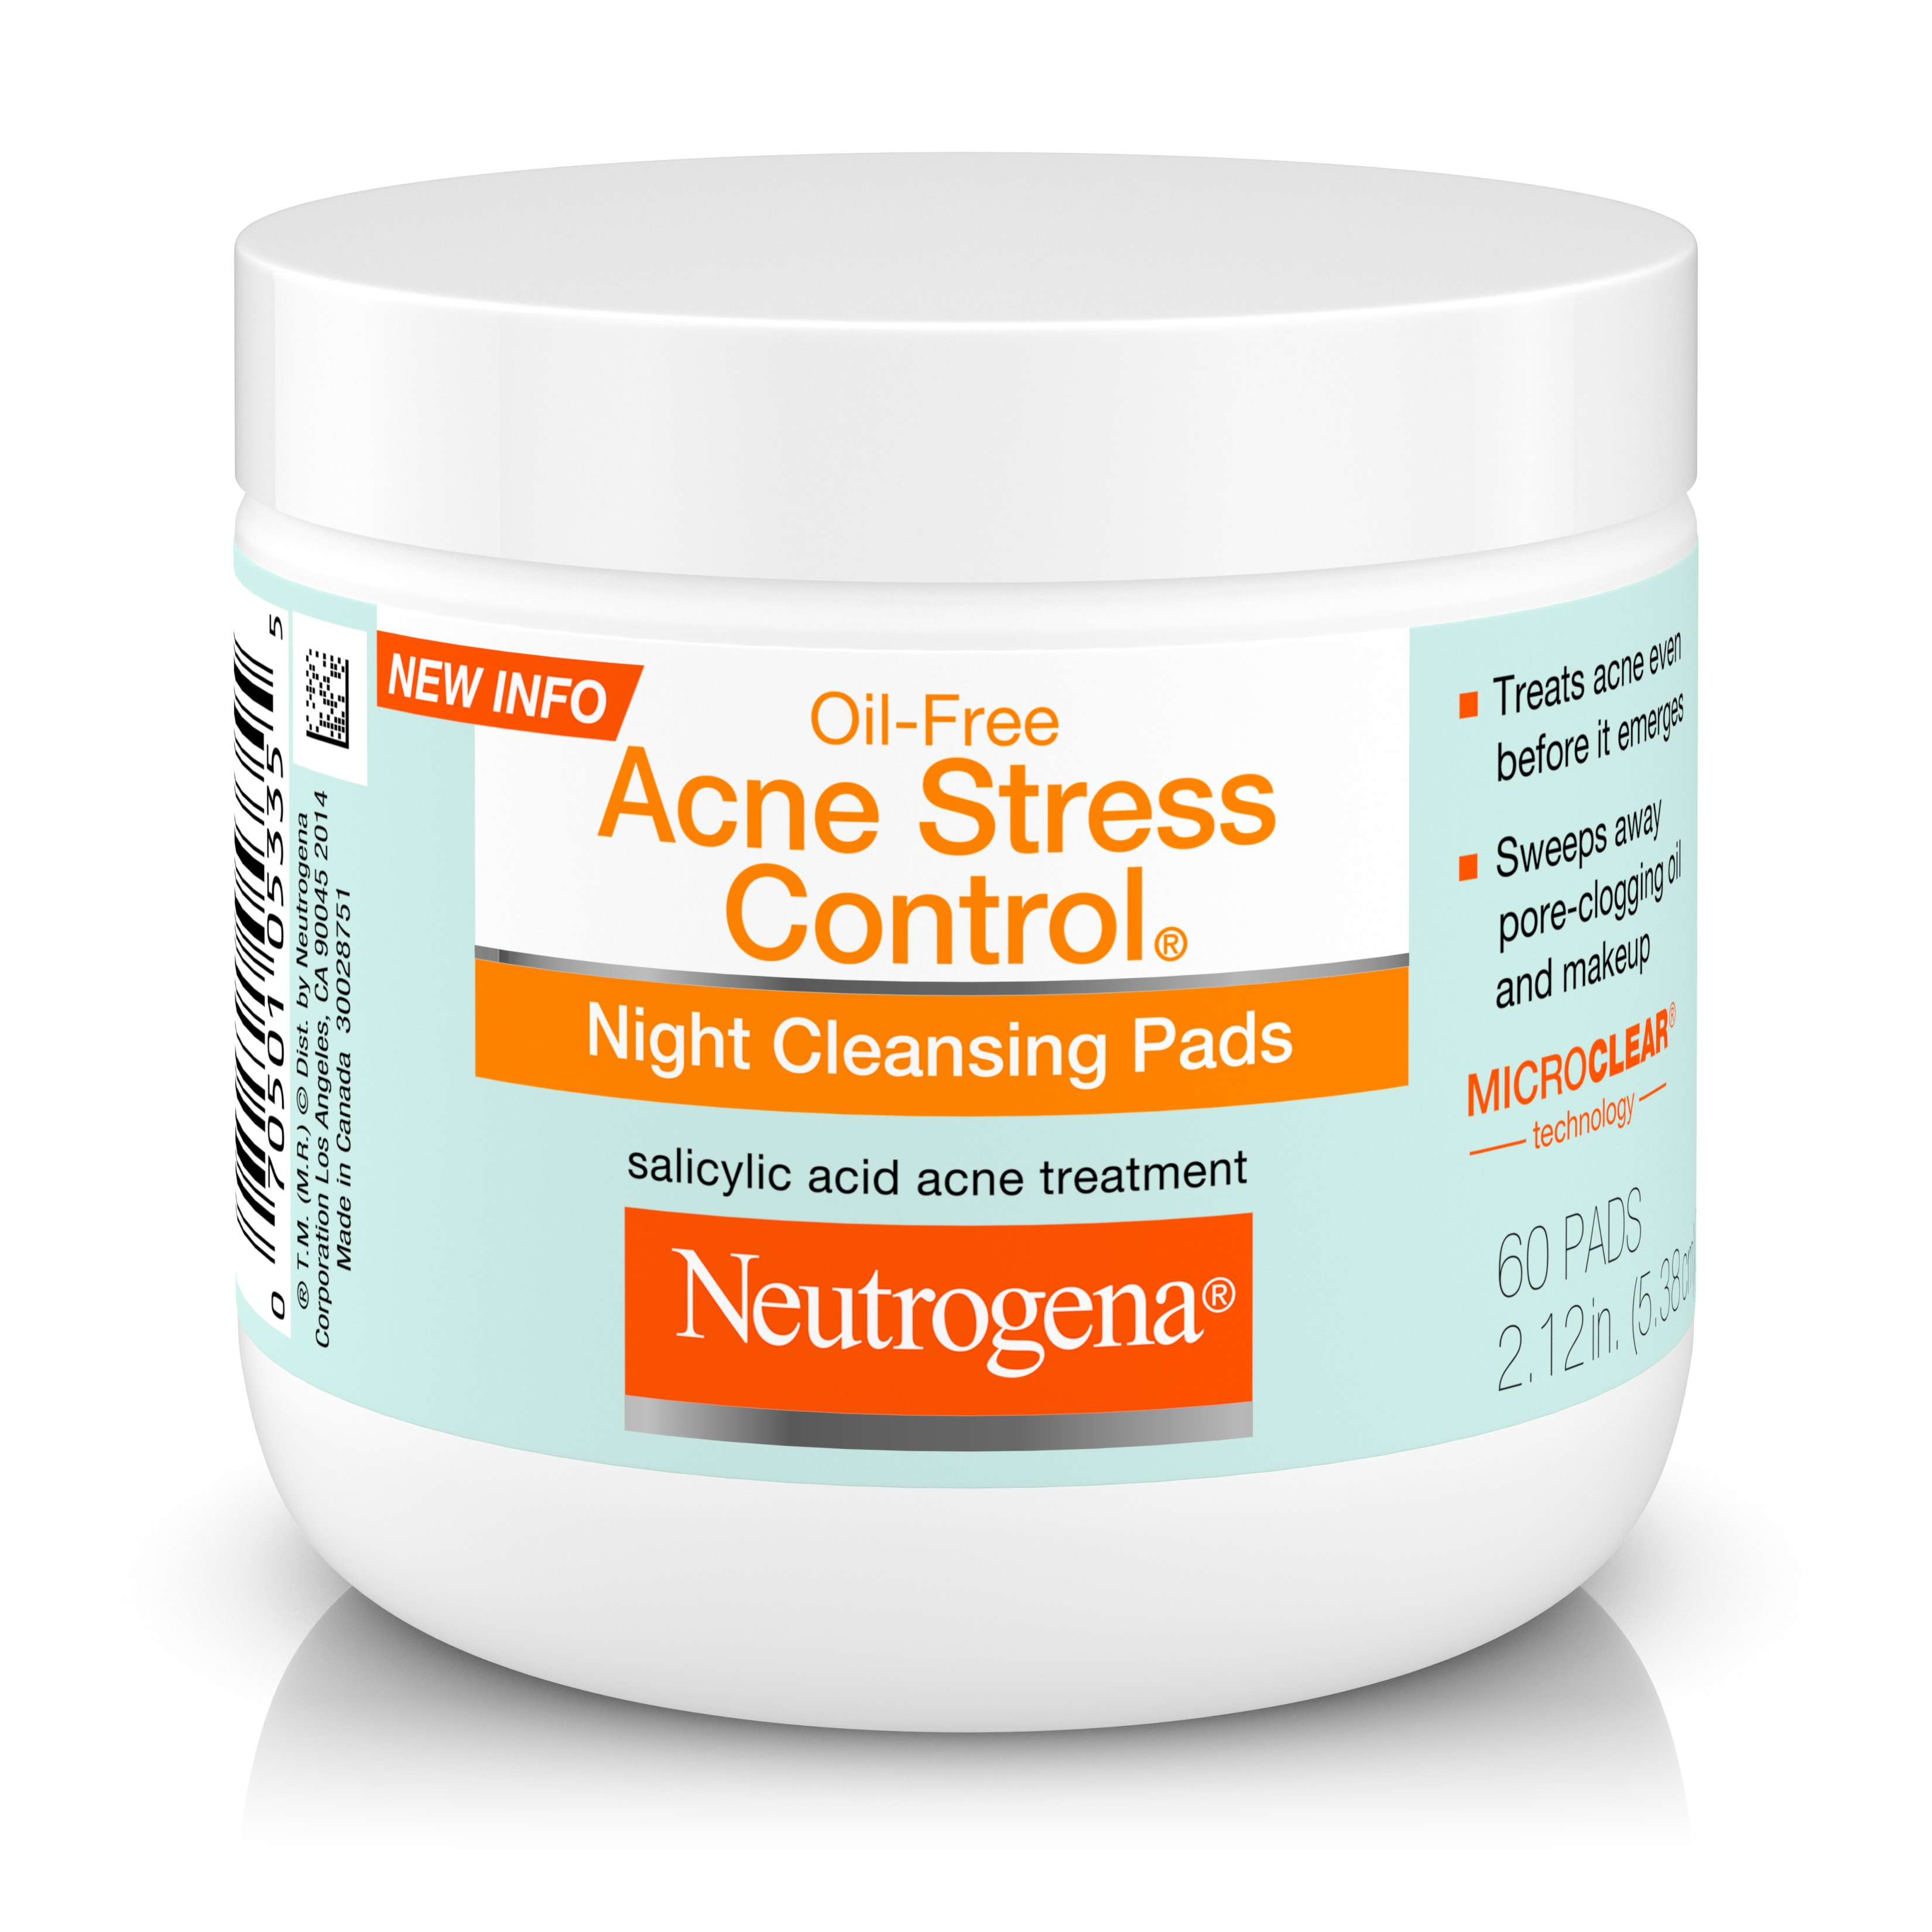 Neutrogena Oil-Free Acne Stress Control Night Cleansing Pads, 60 ct.